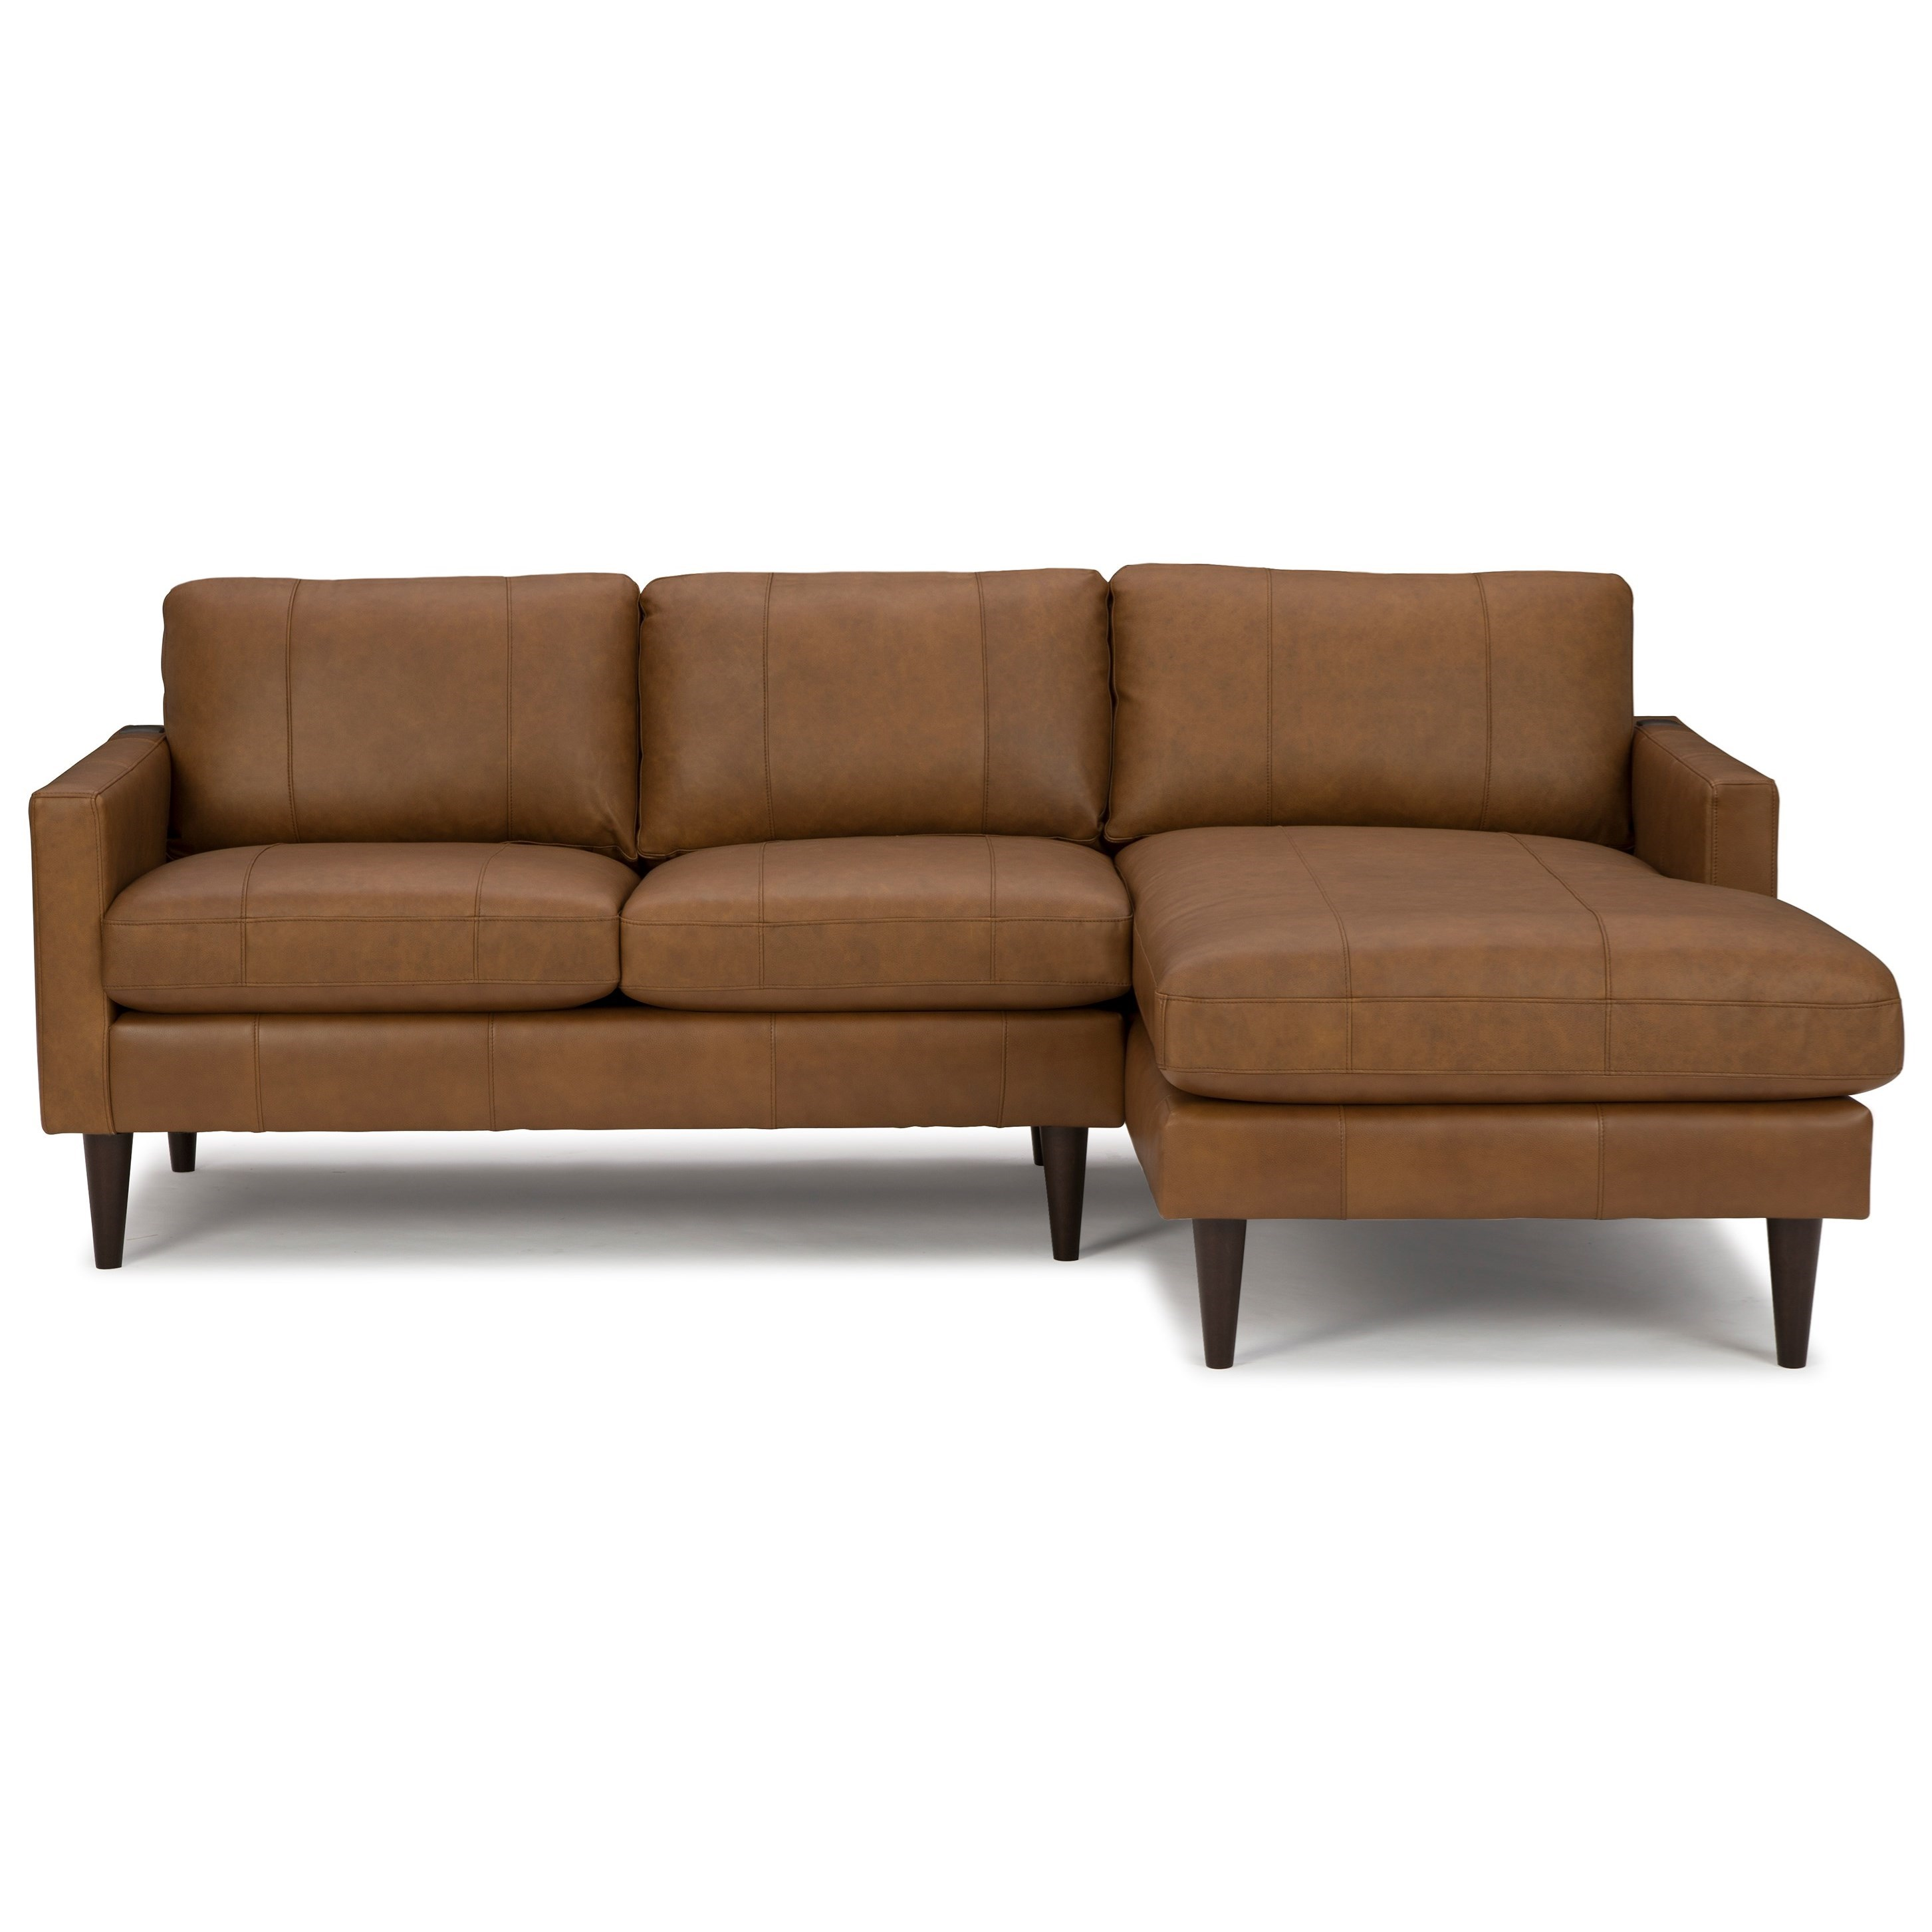 Trafton Chaise Sofa with RAF Chaise by Best Home Furnishings at Baer's Furniture